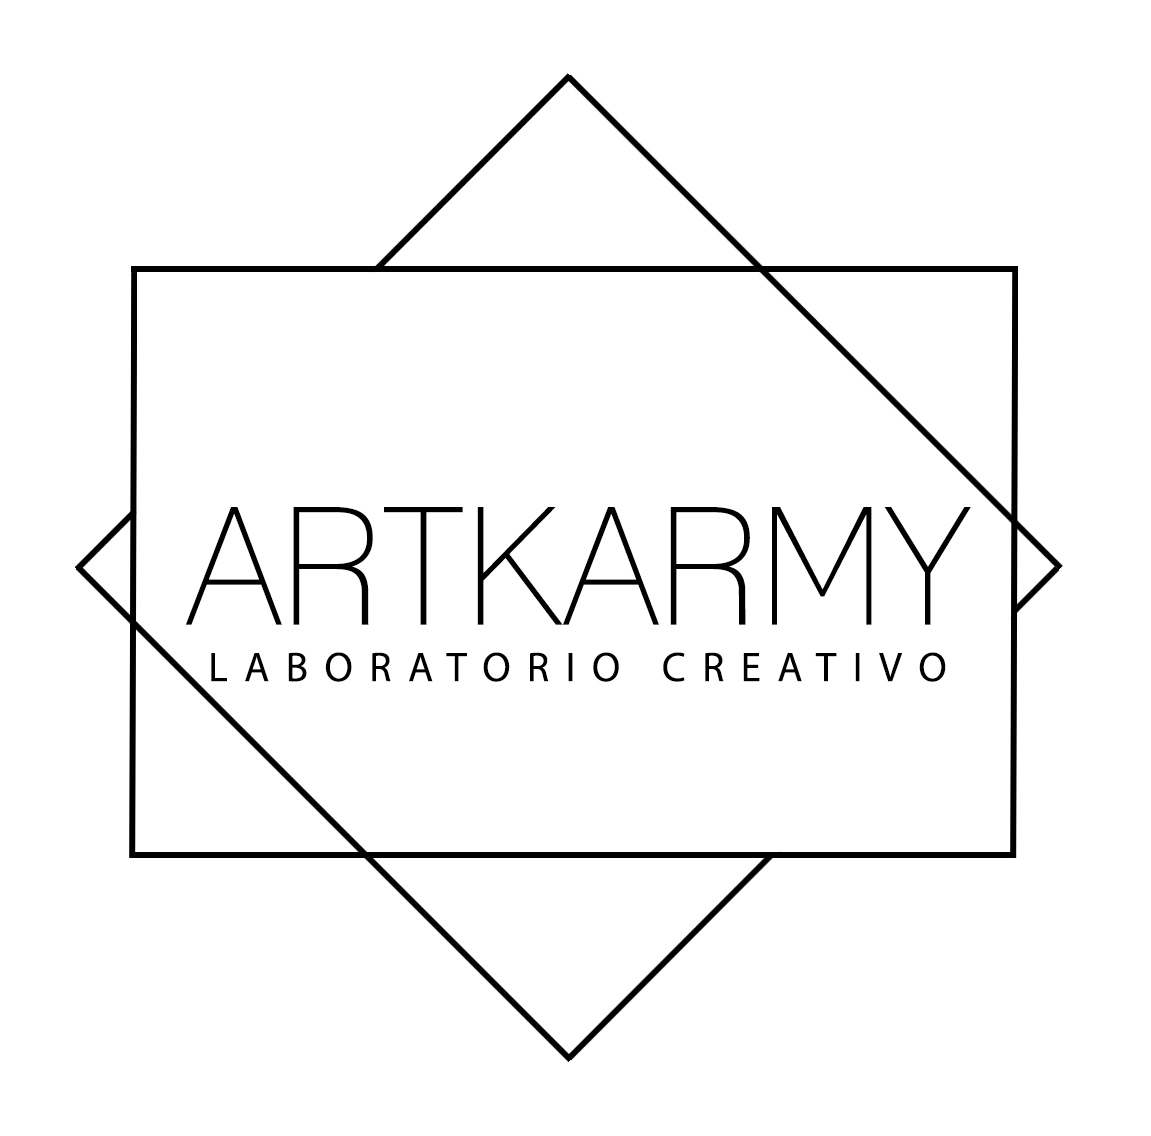 ARTKARMY LABORATORIO CREATIVO